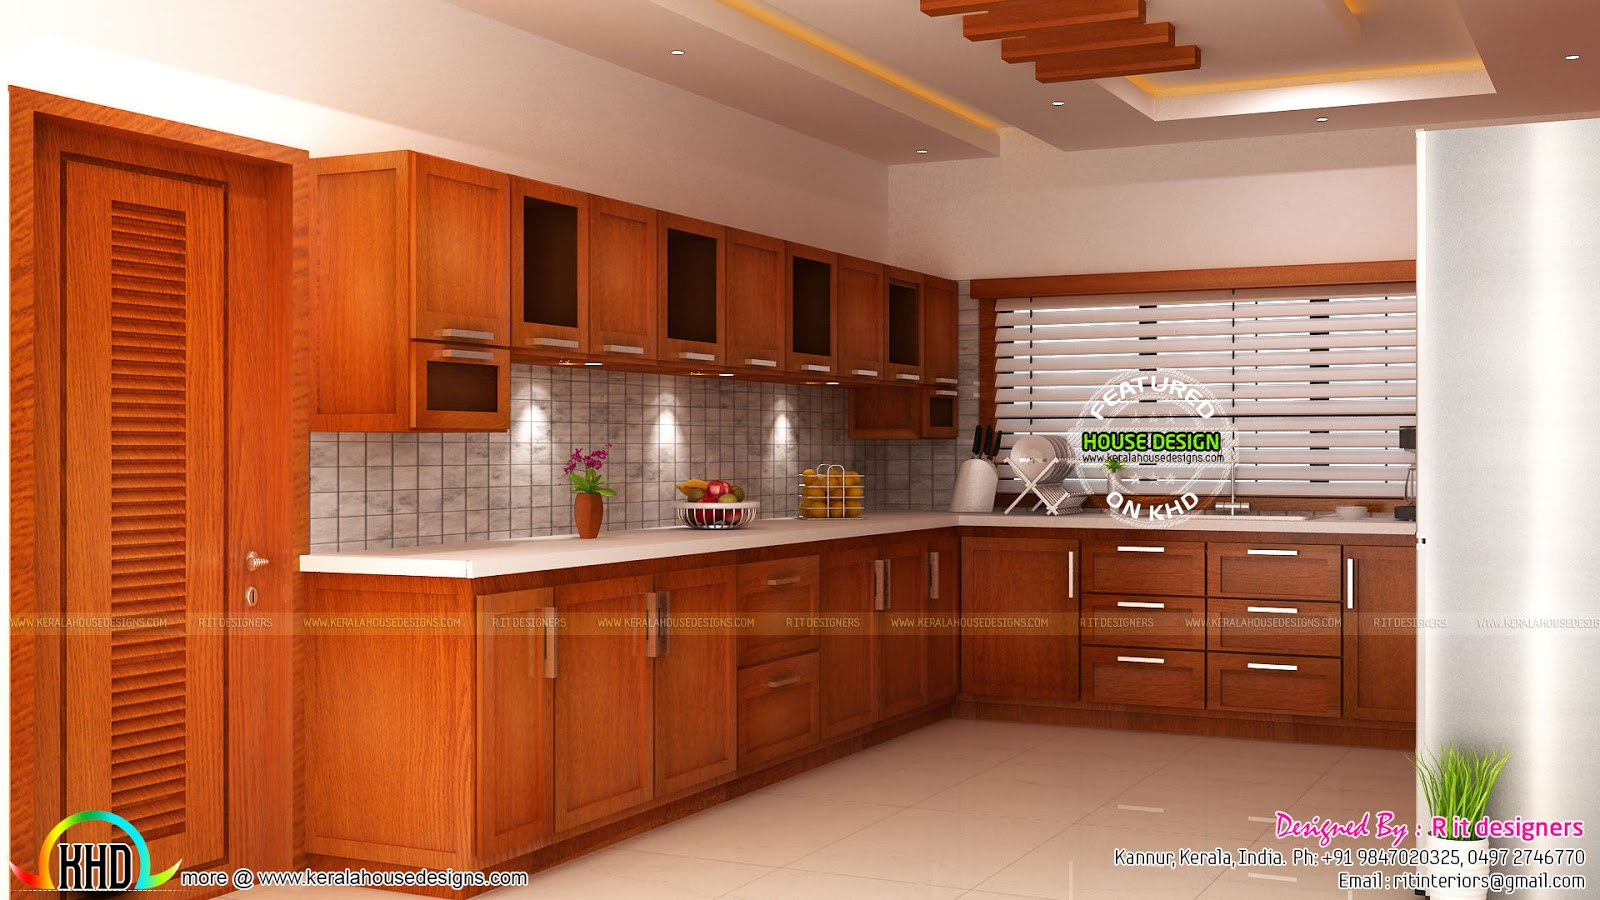 Modular Kitchen Living And Bedroom Interior Kerala Home Design And Floor Plans